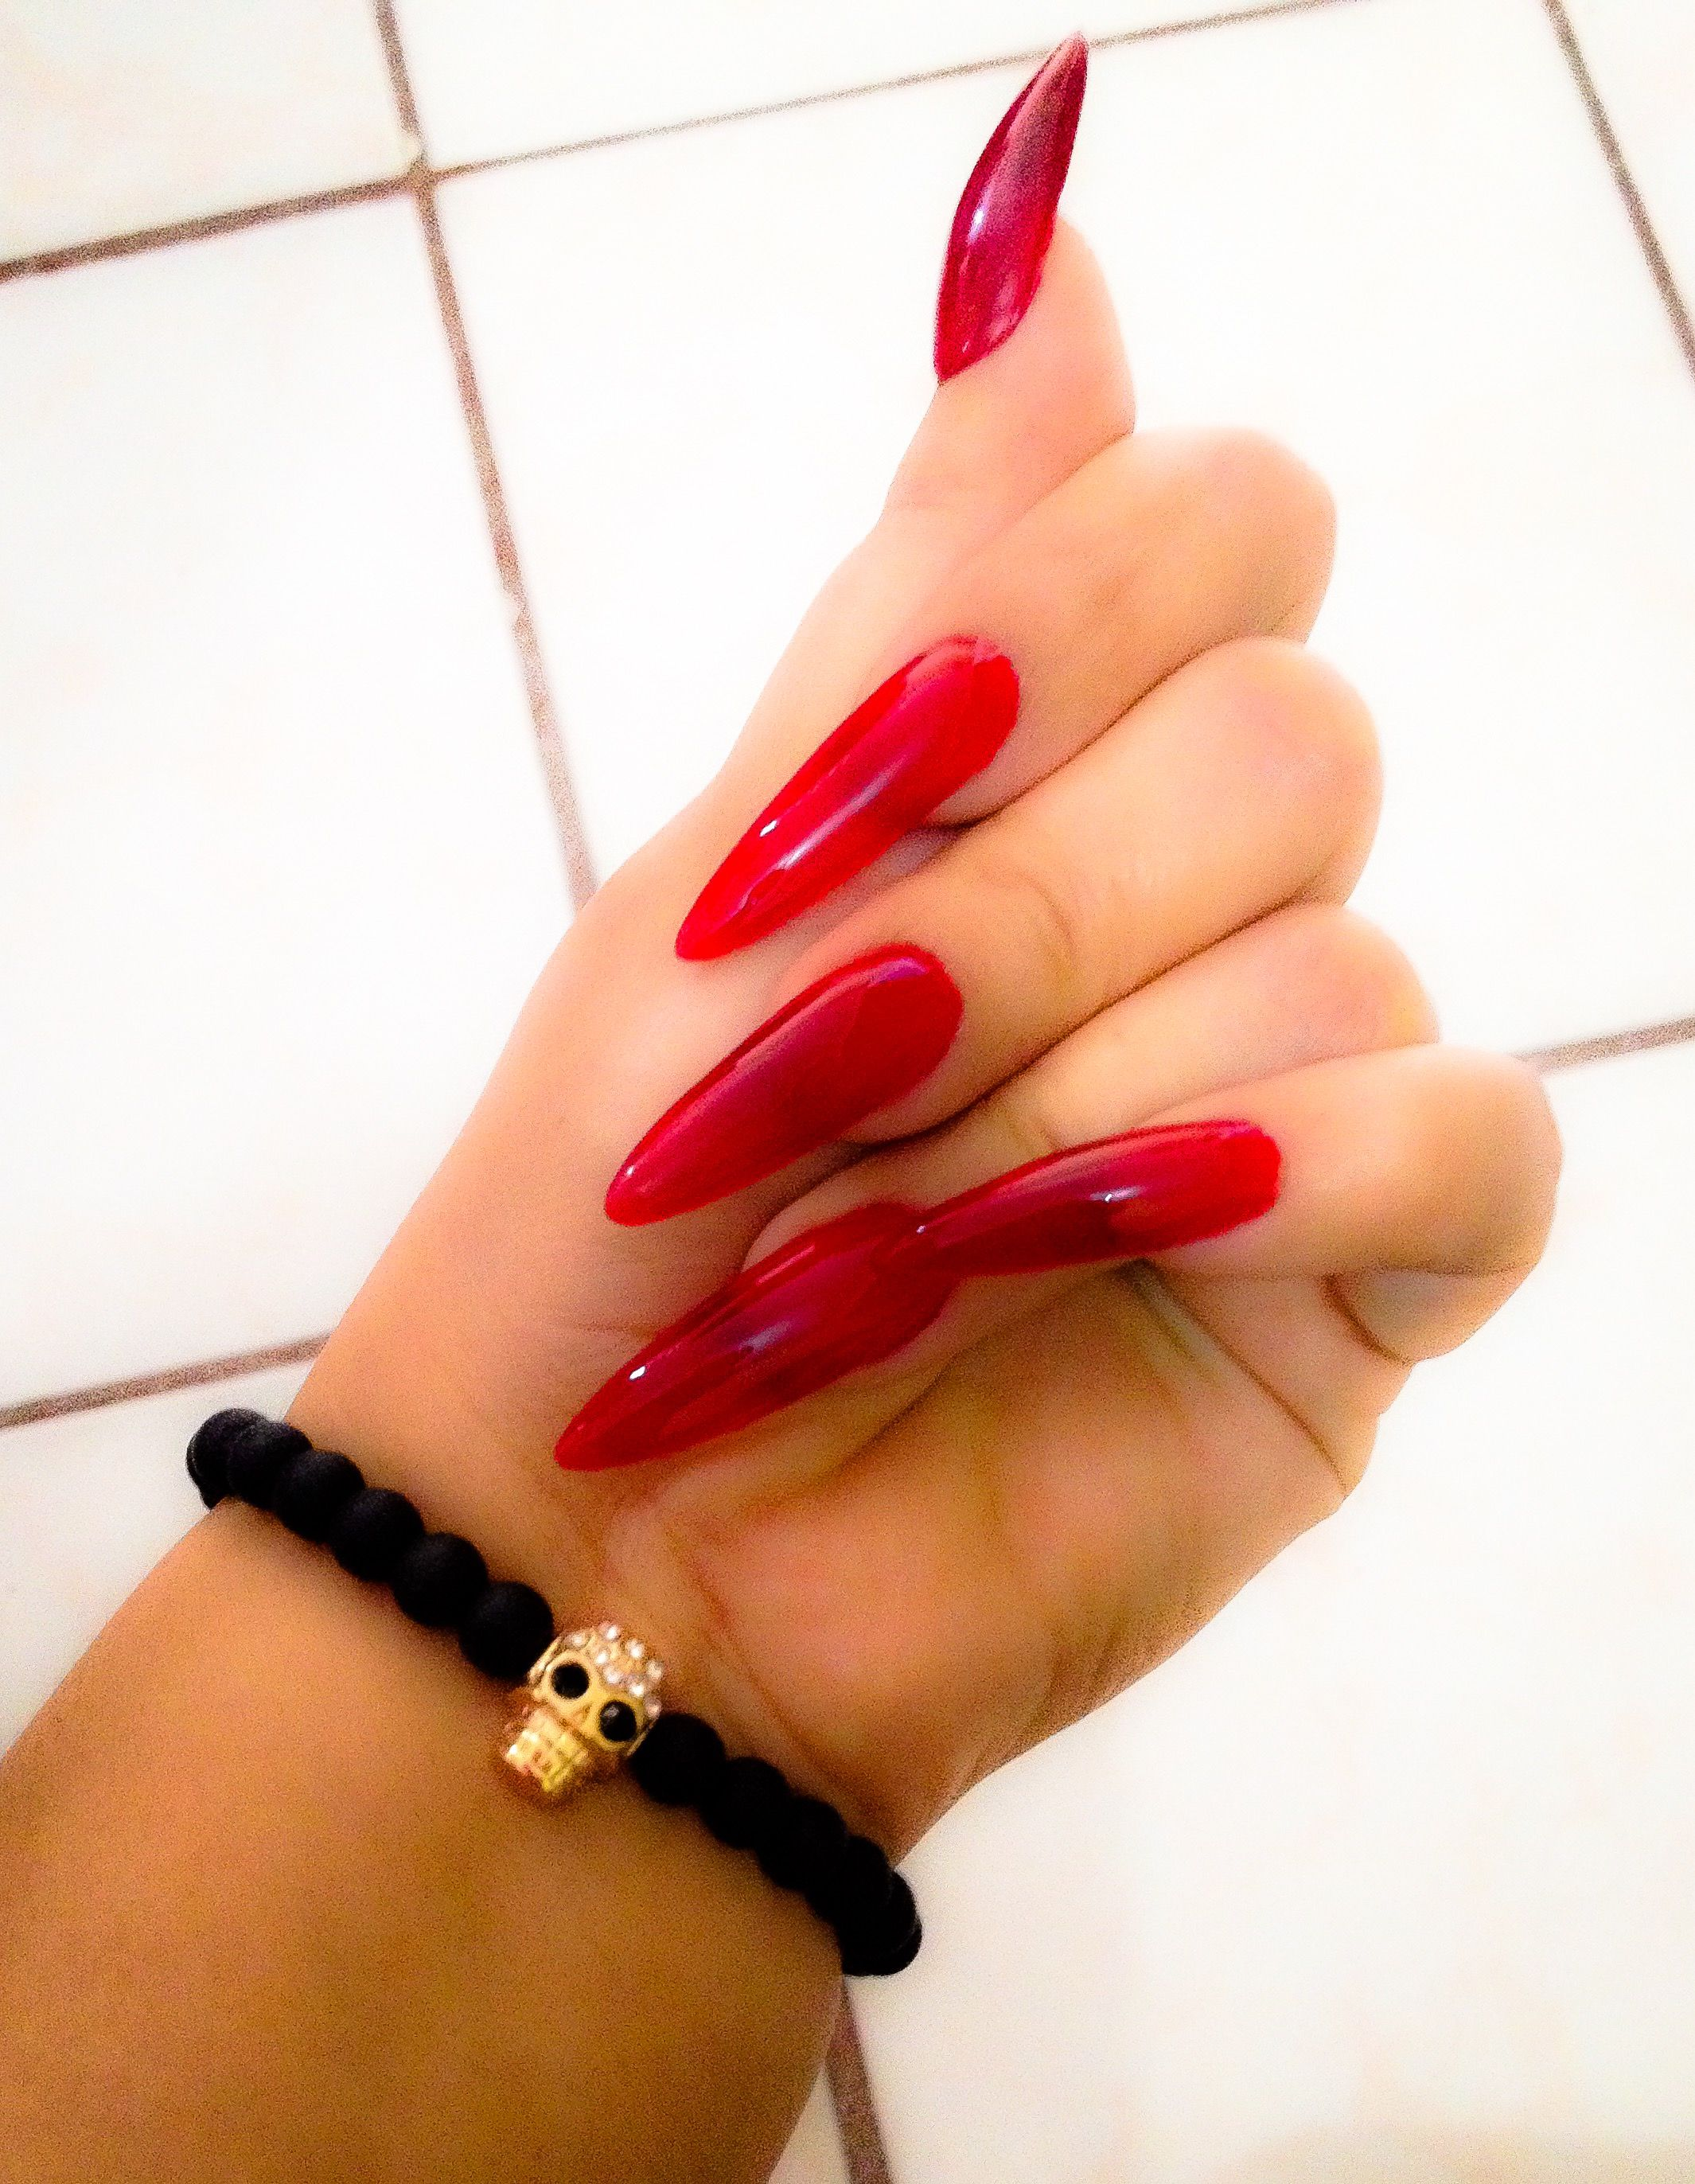 Red Stiletto nails   1. Double Team + Dynamicpunch Amazing Powerful ...